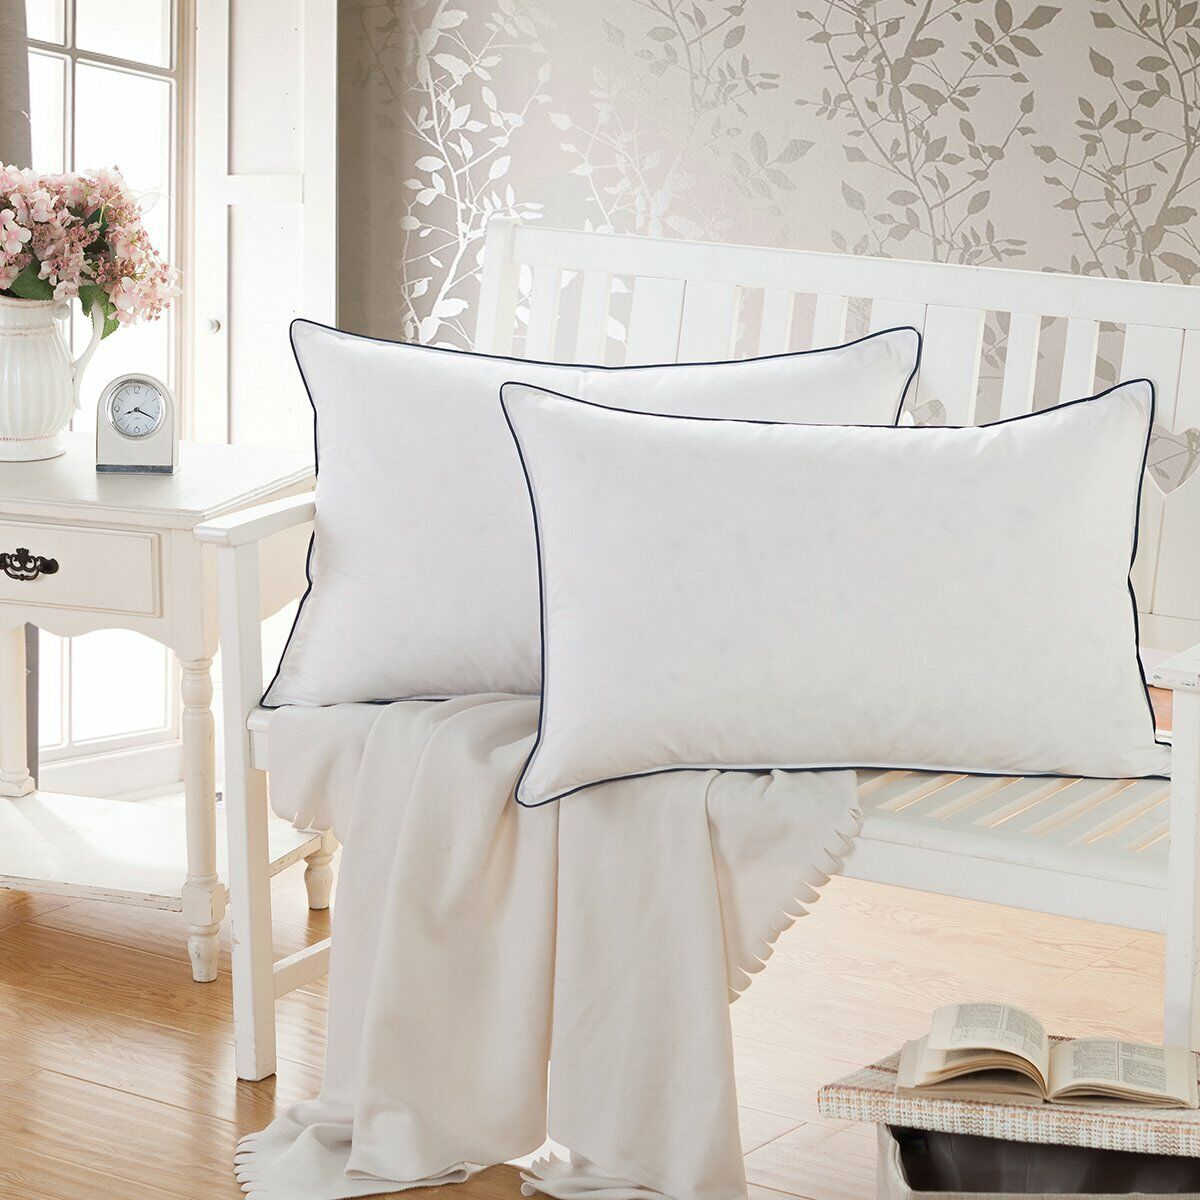 White Goose Feather Down Bed Pillows for Sleeping,100% Cotto